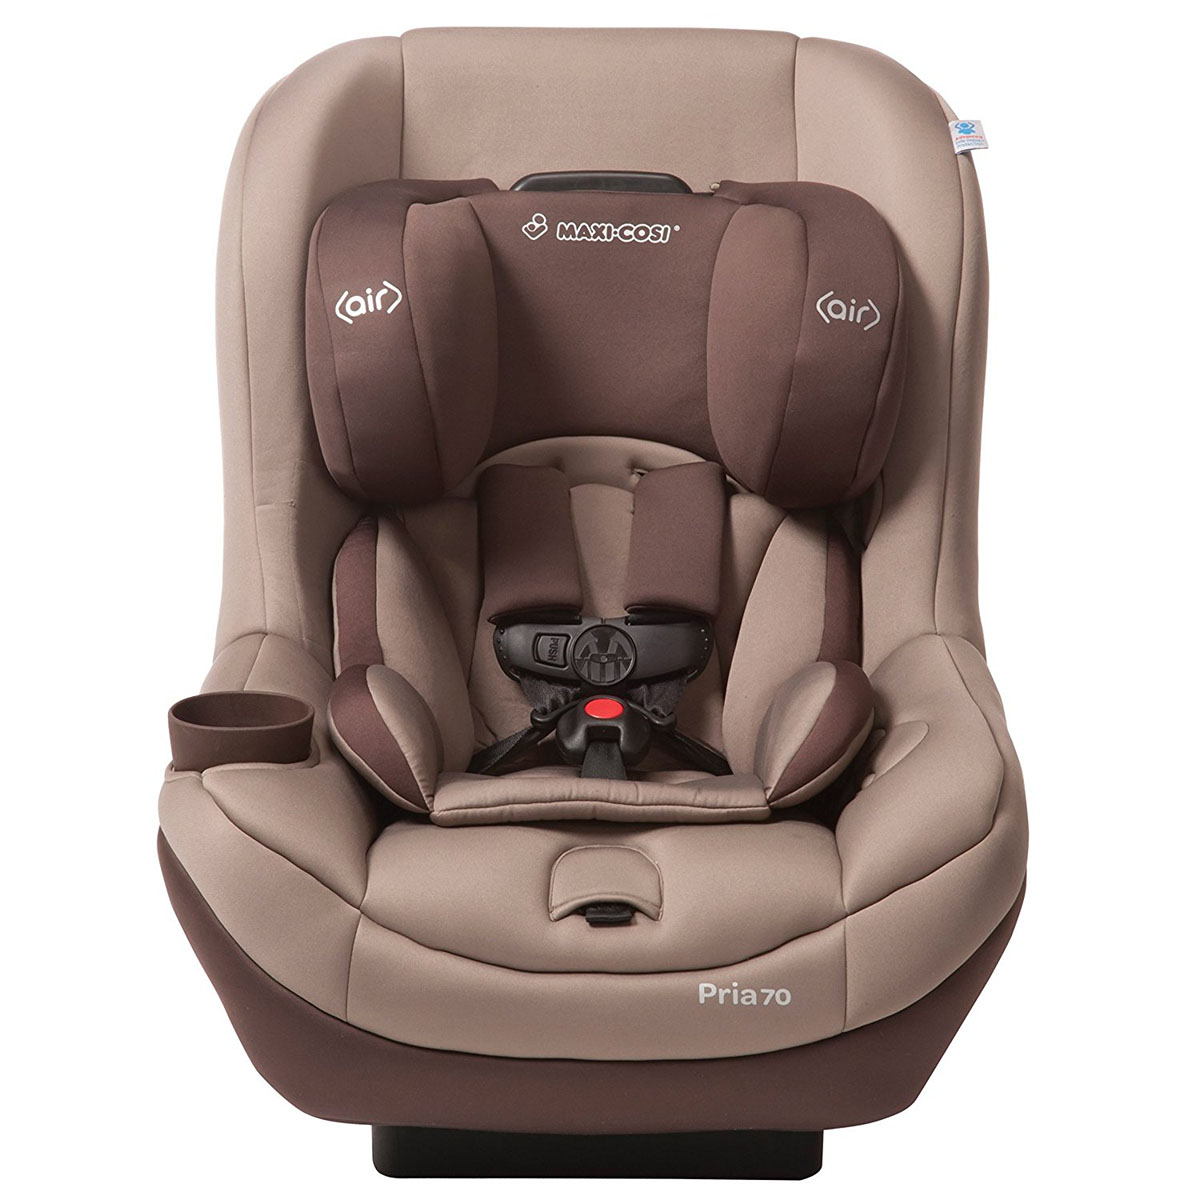 MAXI-COSI Pria 70 Convertible Car Seat - Walnut